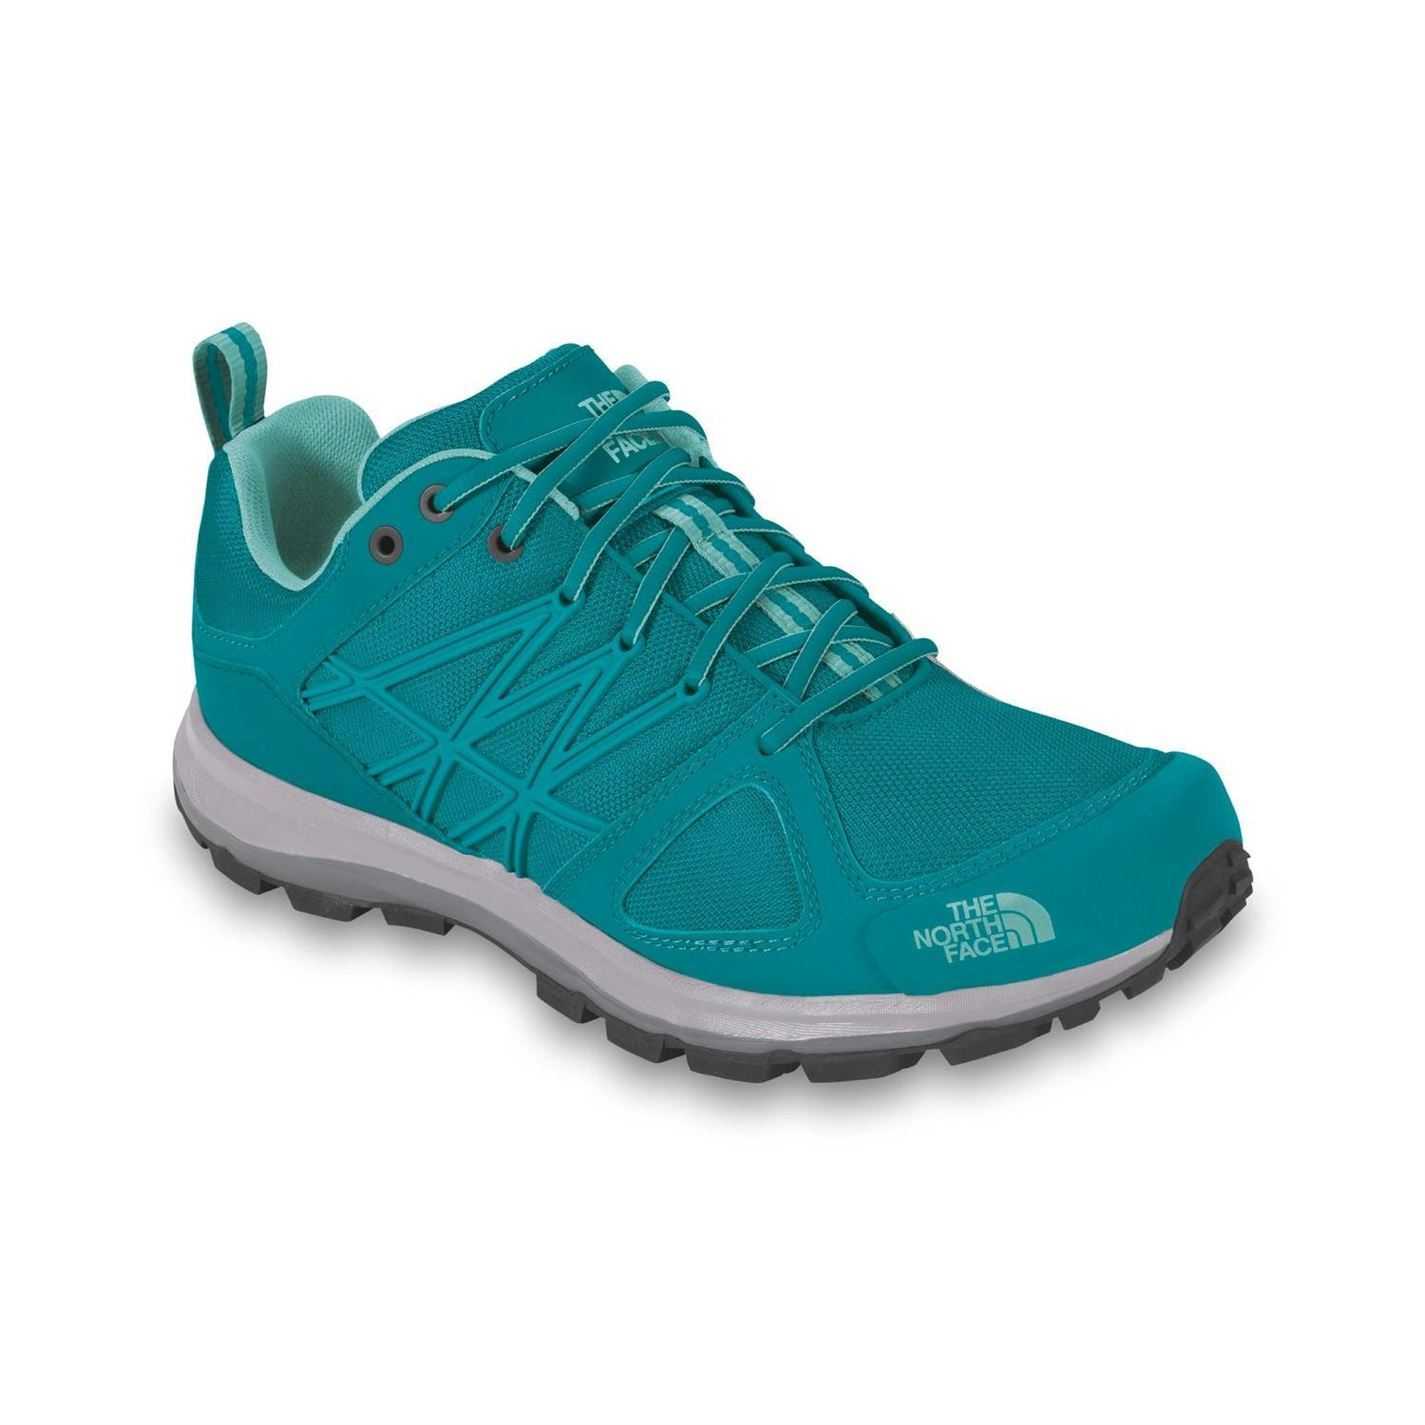 the womens litewave walking shoes hiking